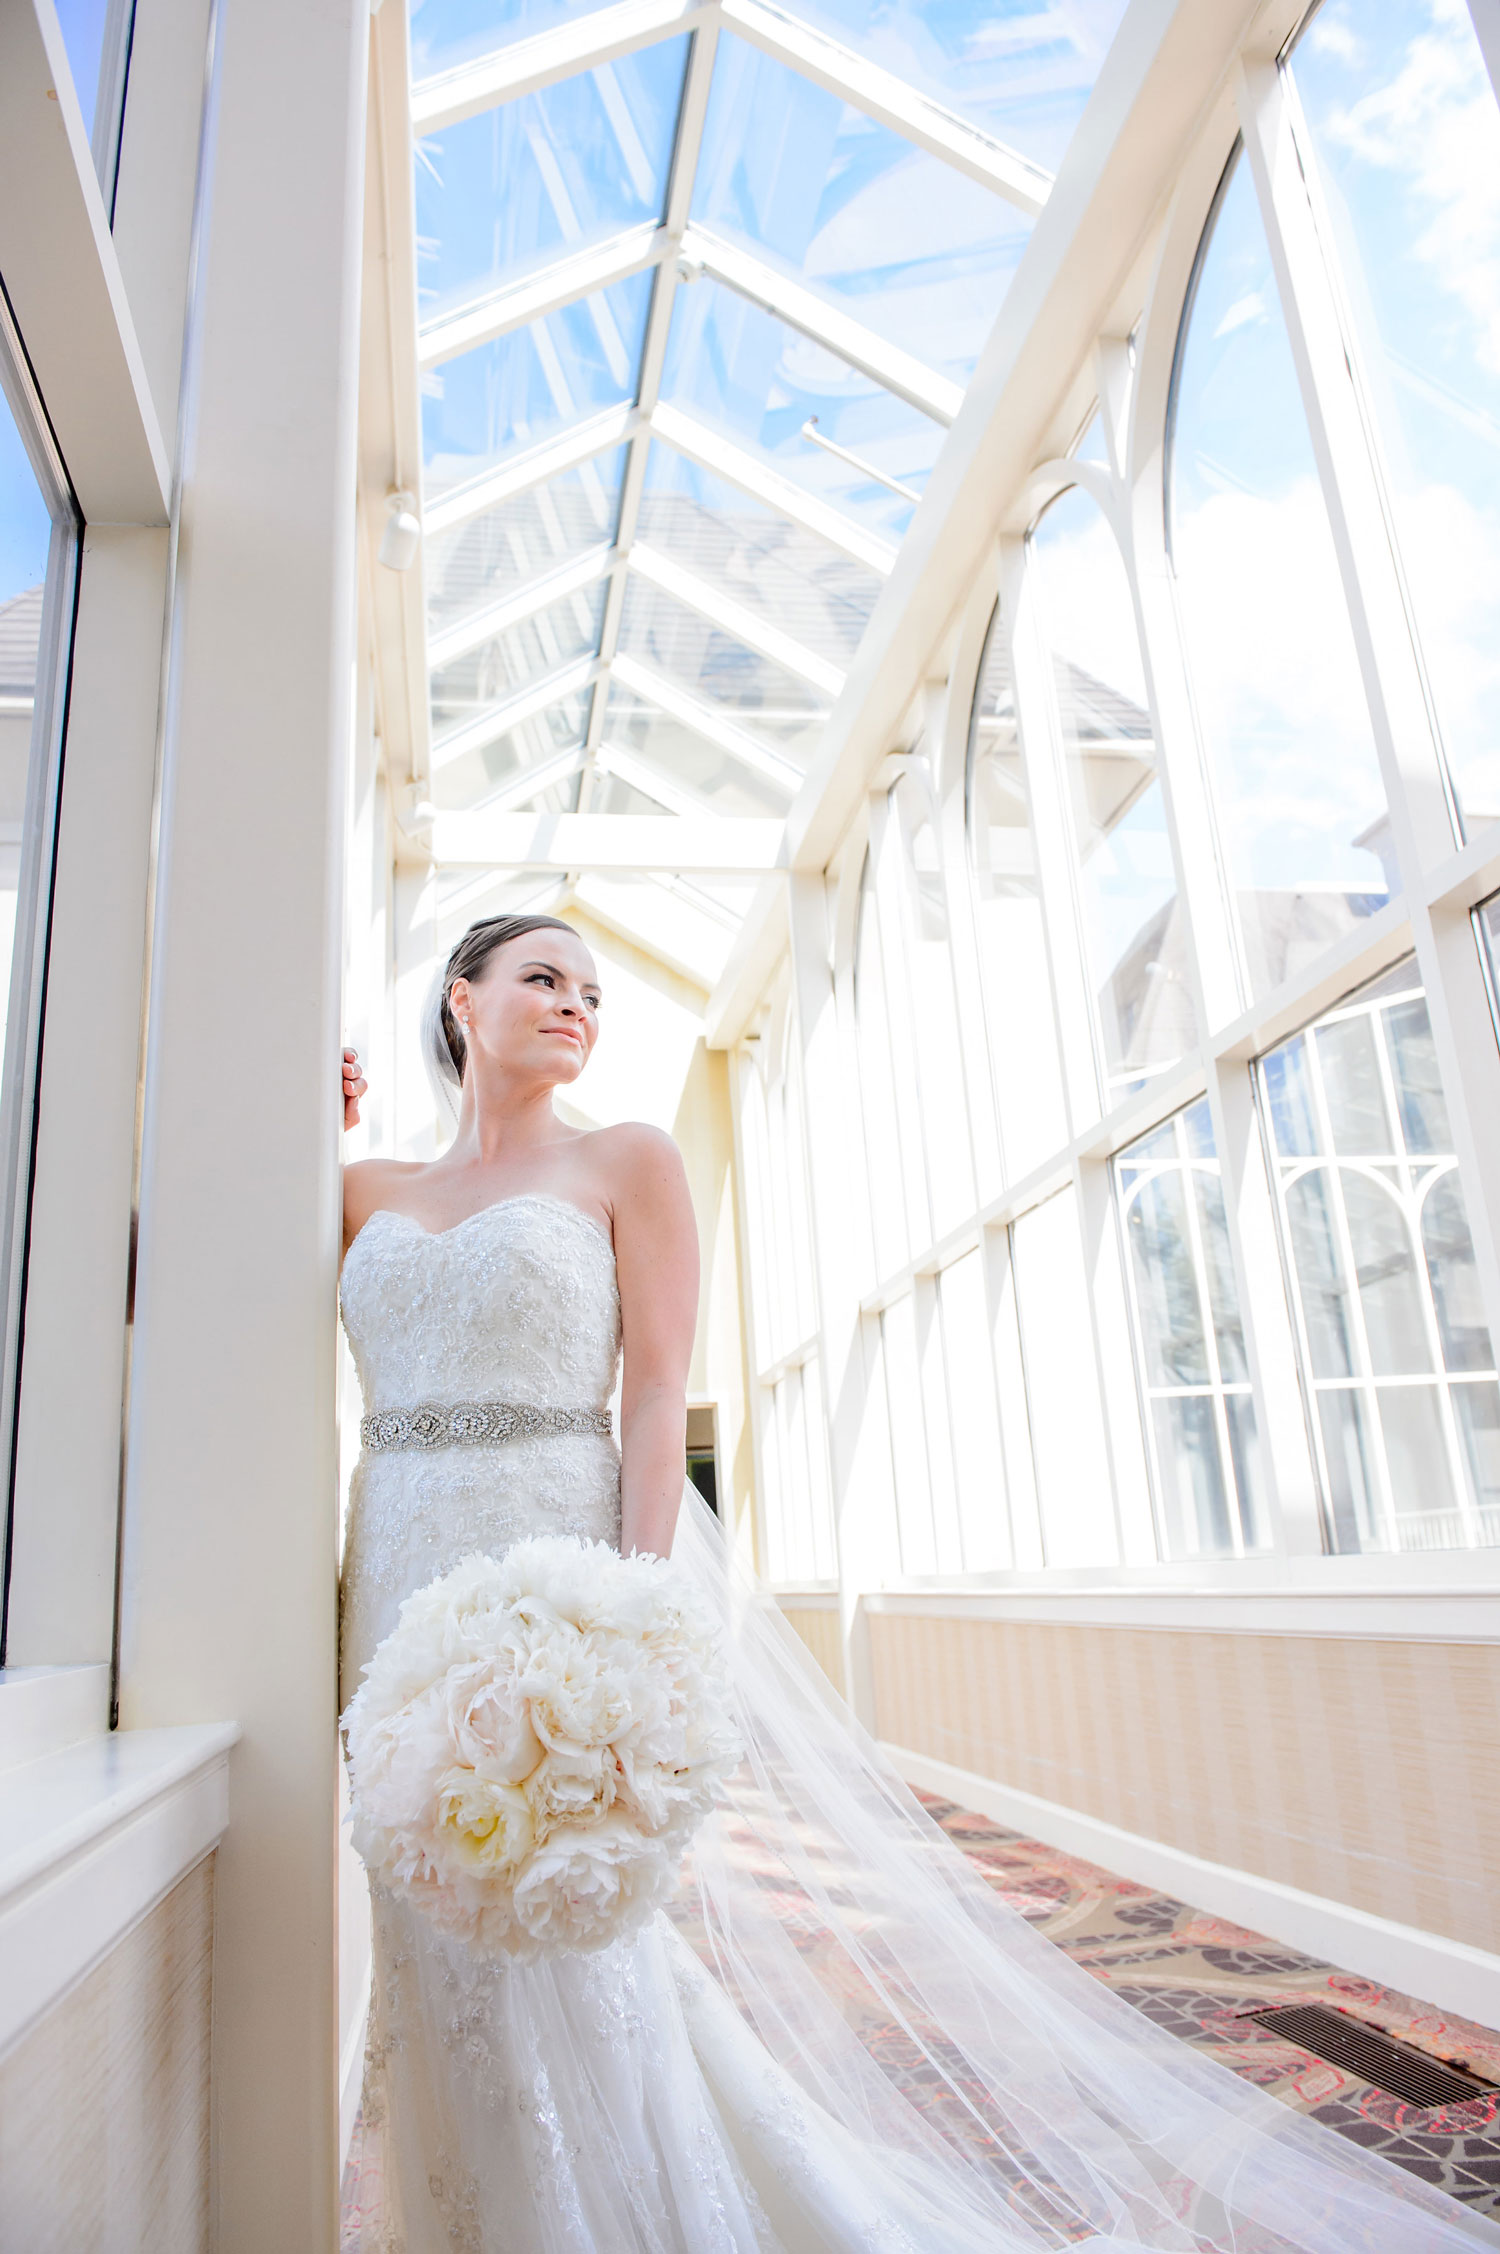 Bride in strapless wedding dress white bouquet looking out window bridal tips